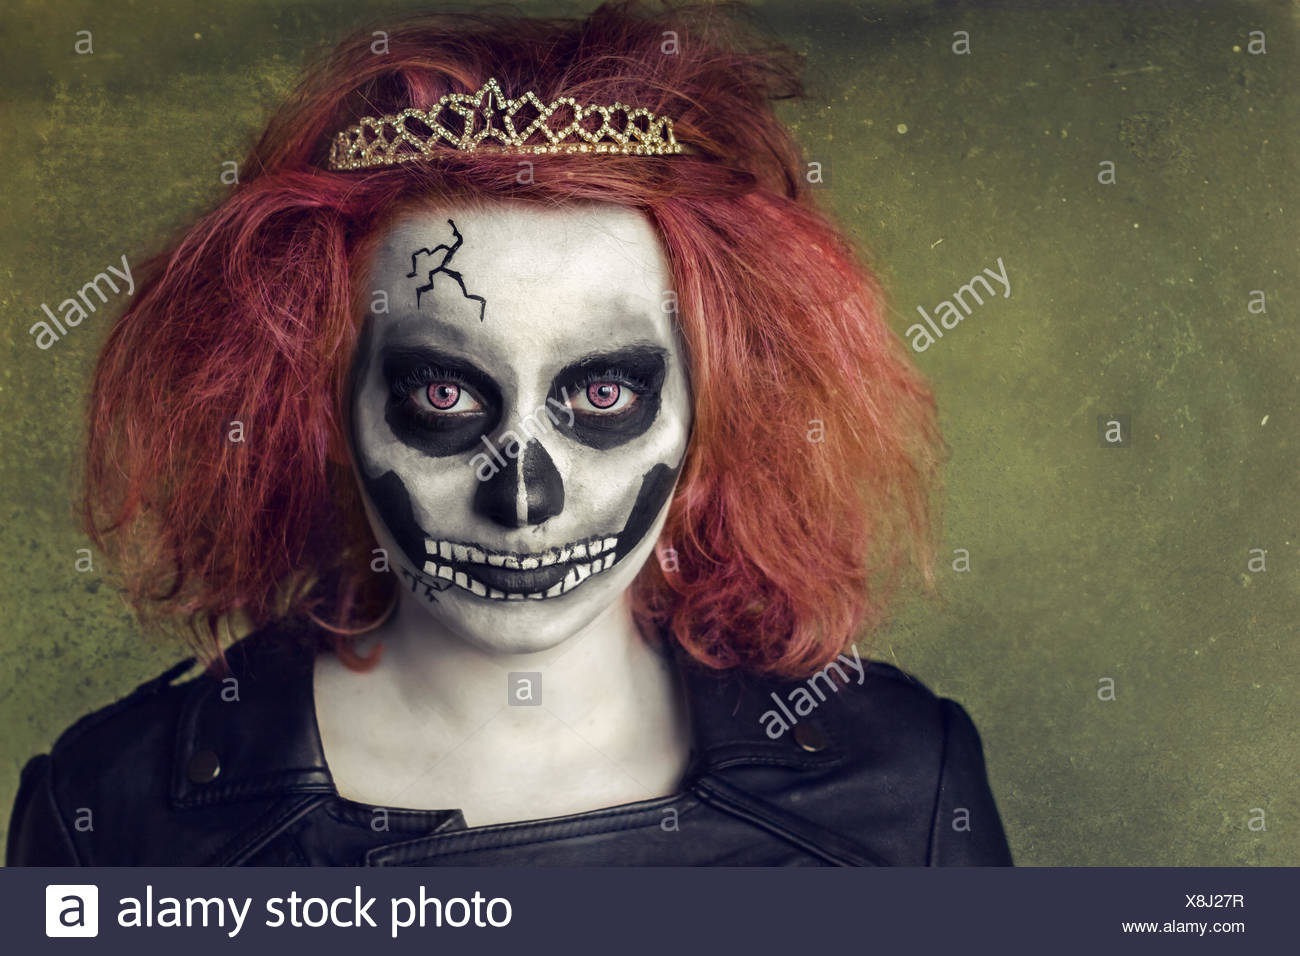 Portrait of girl (12-13) with painted face - Stock Image